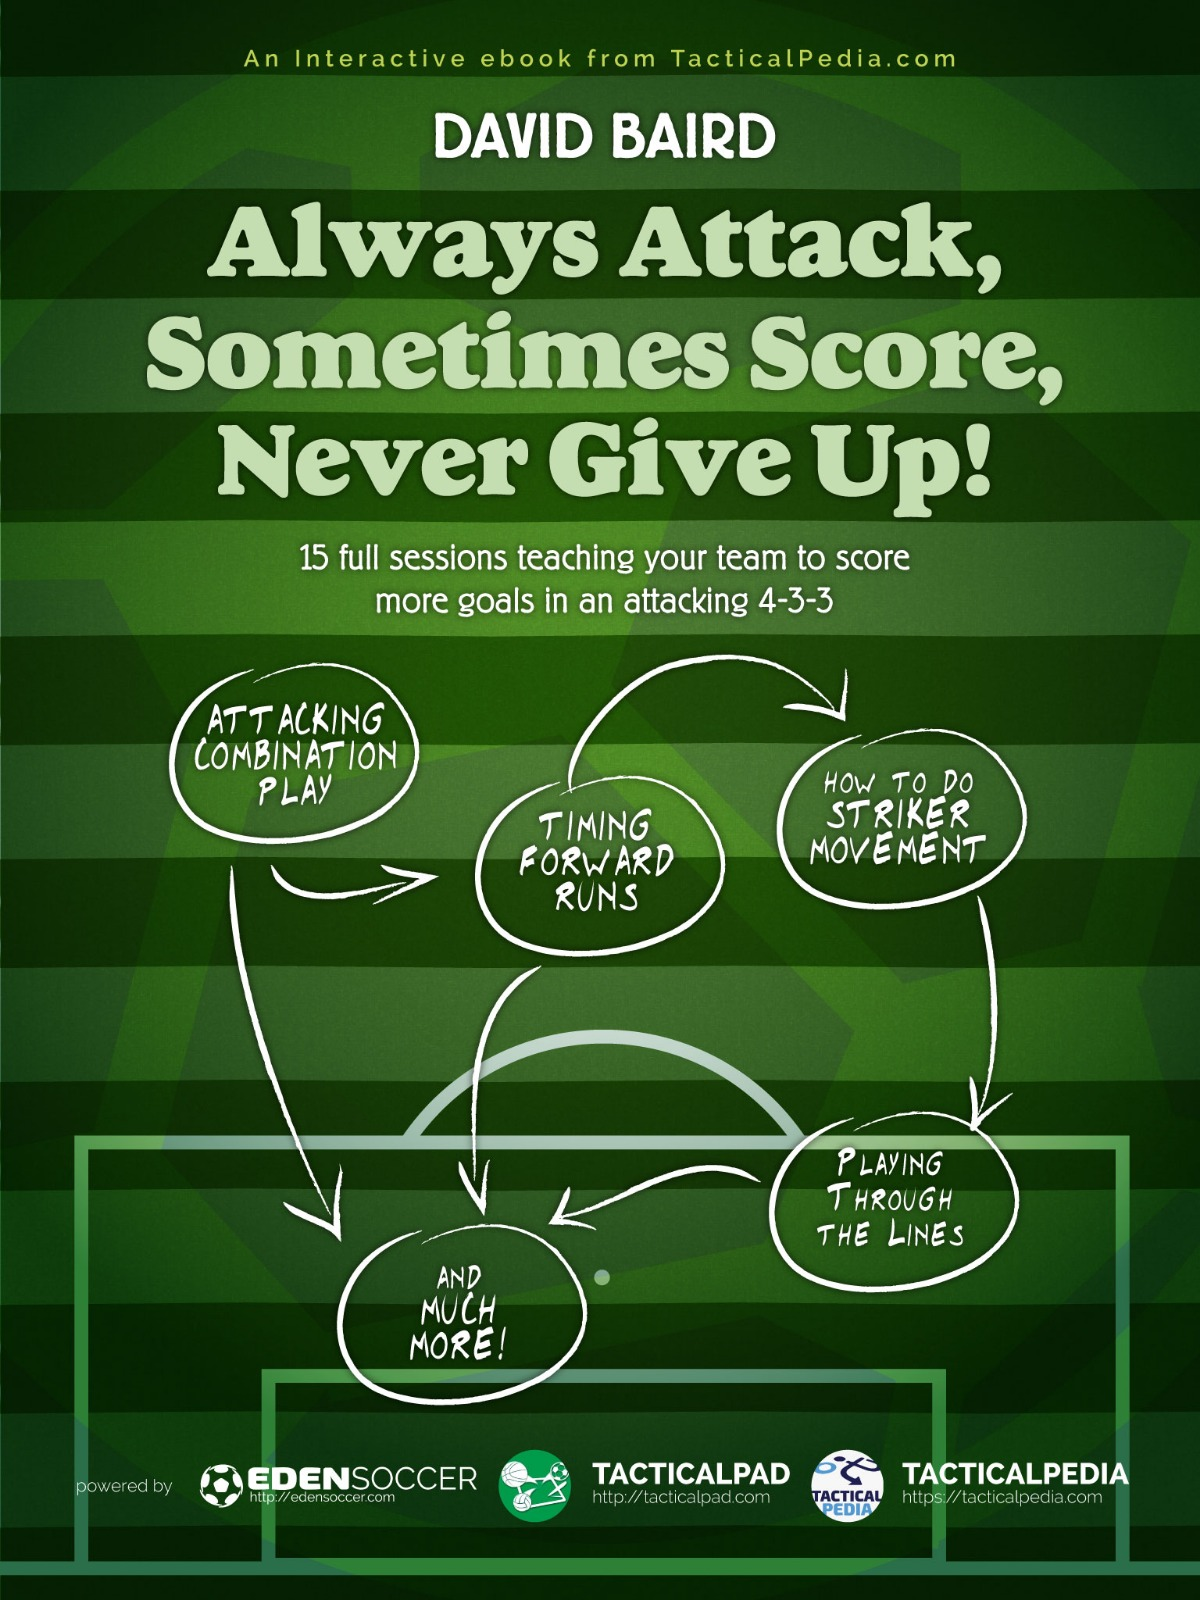 Always Attack, Sometimes Score, Never Give Up!